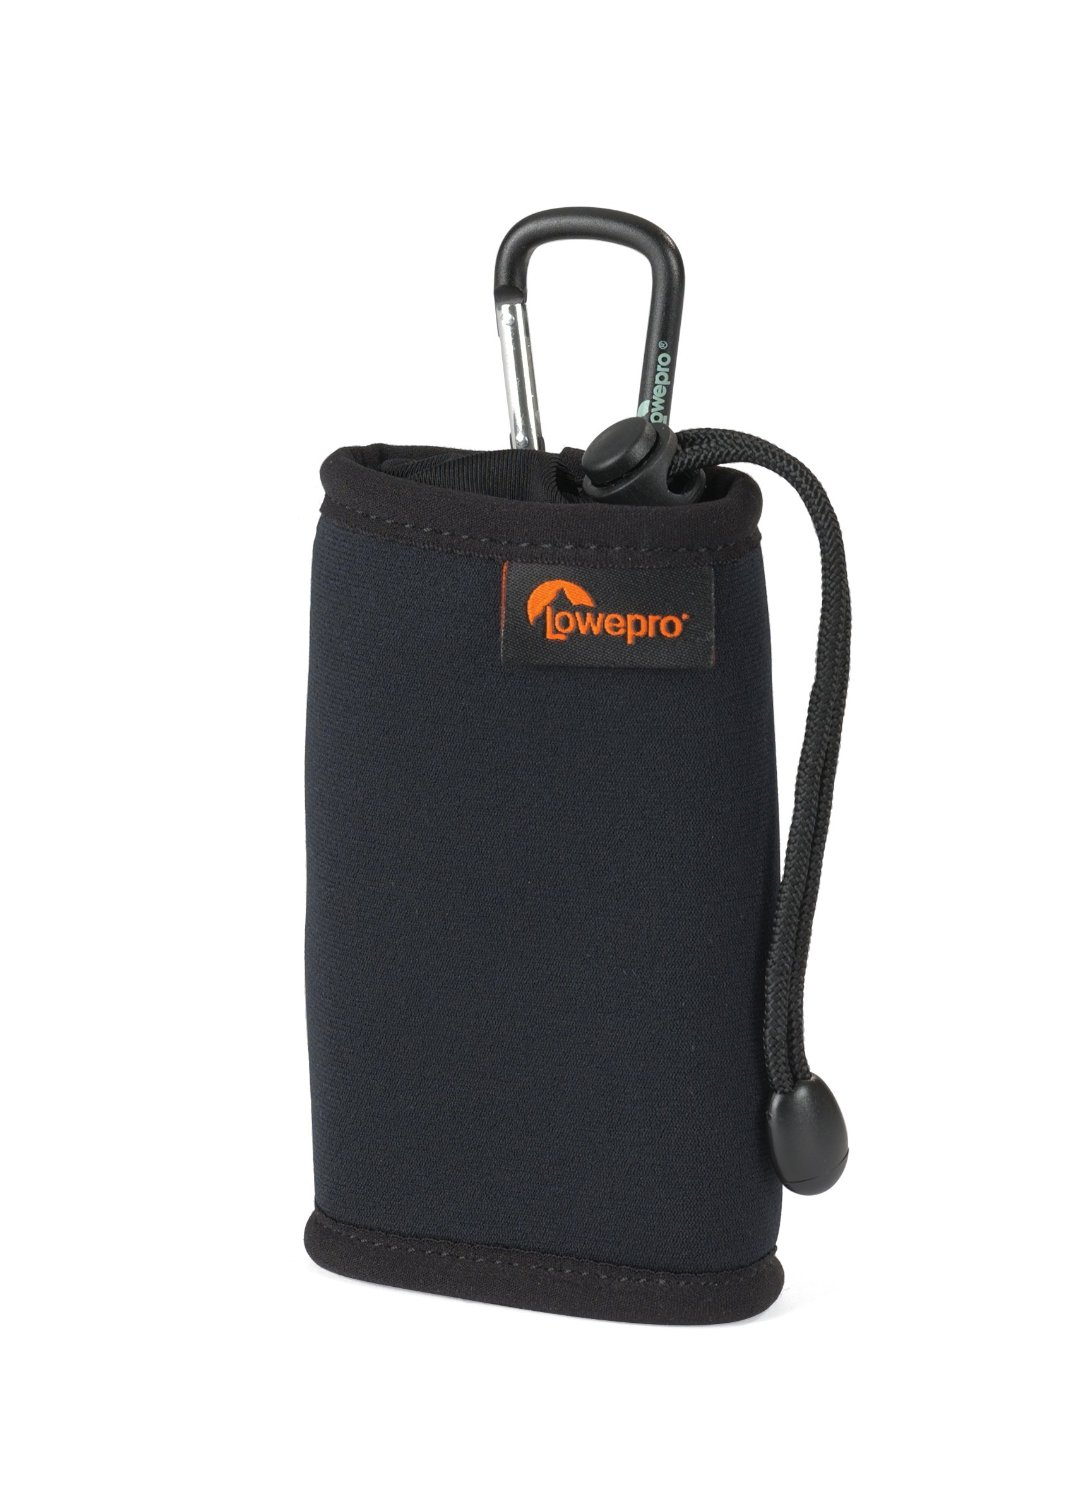 Lowepro Hipshot 20 Case Pouch Bag For Digital Compact Camera Camcorder - Black Enlarged Preview